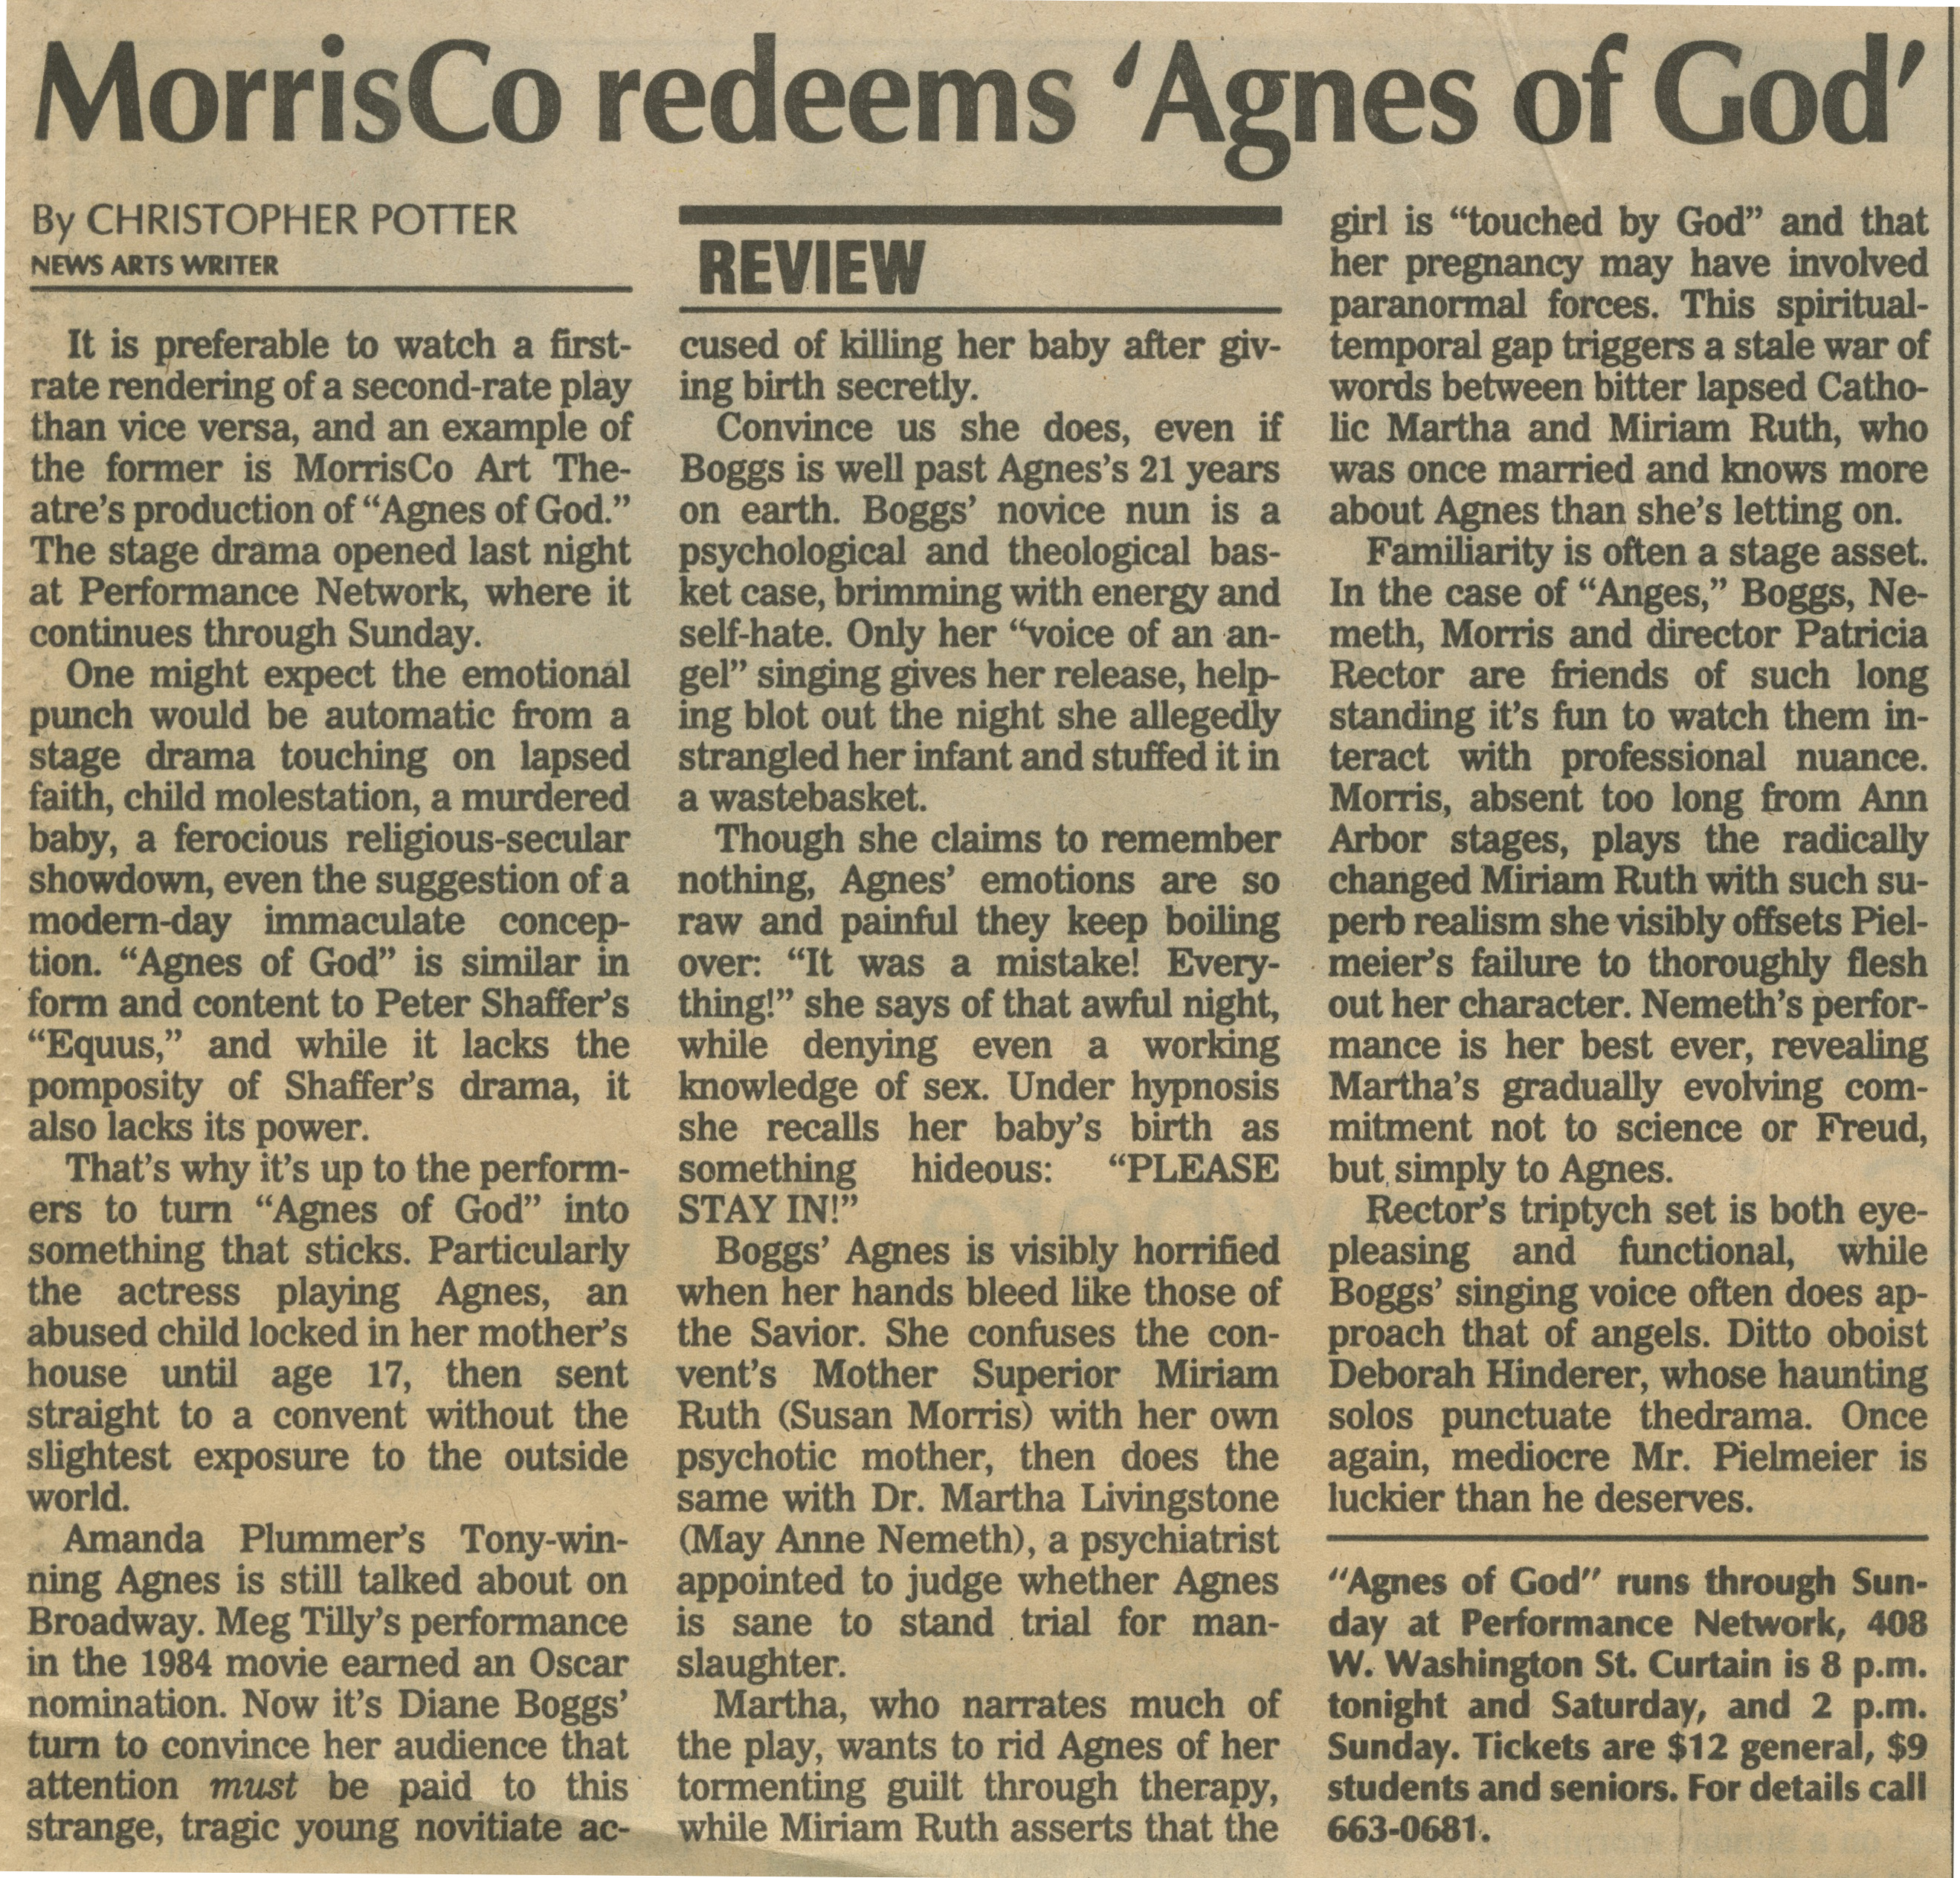 MorrisCo redeems 'Agnes of God' image